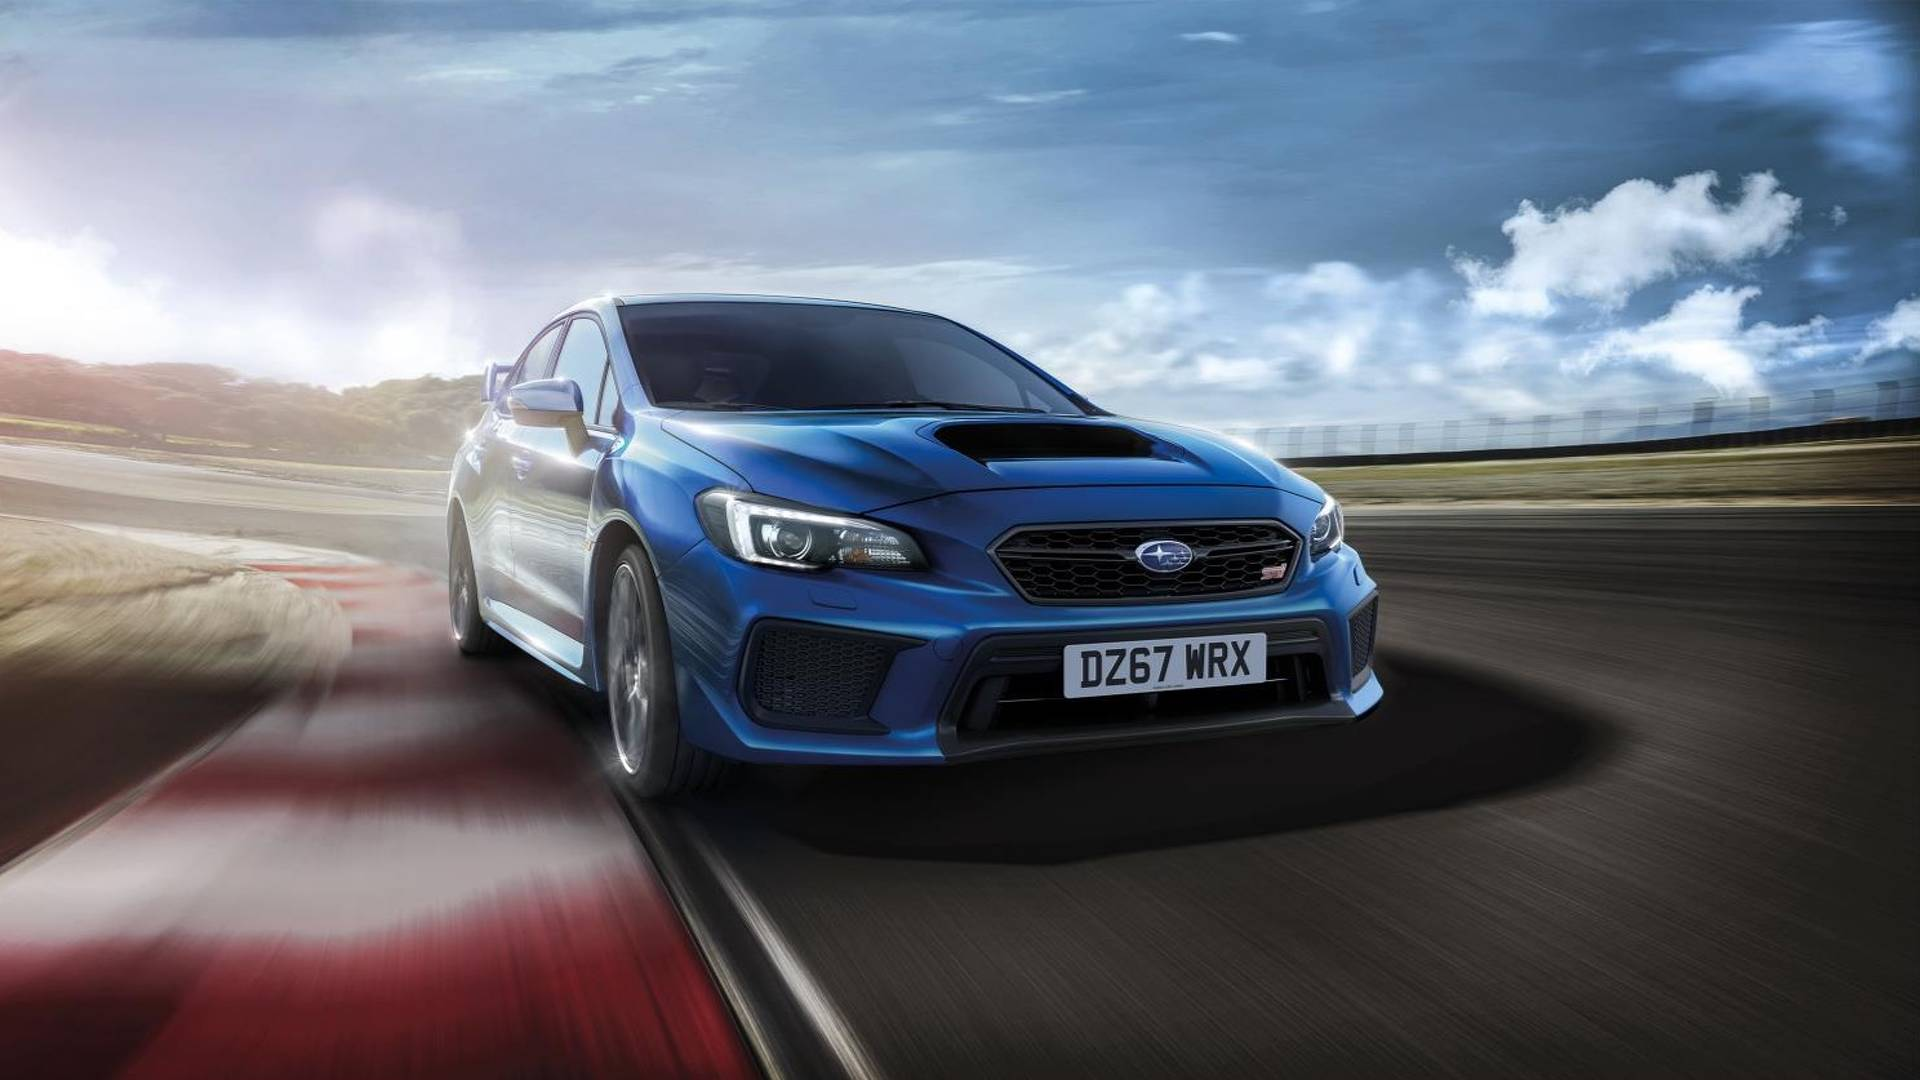 Confirmed: Subaru WRX STI Leaves Europe After 2018, Special